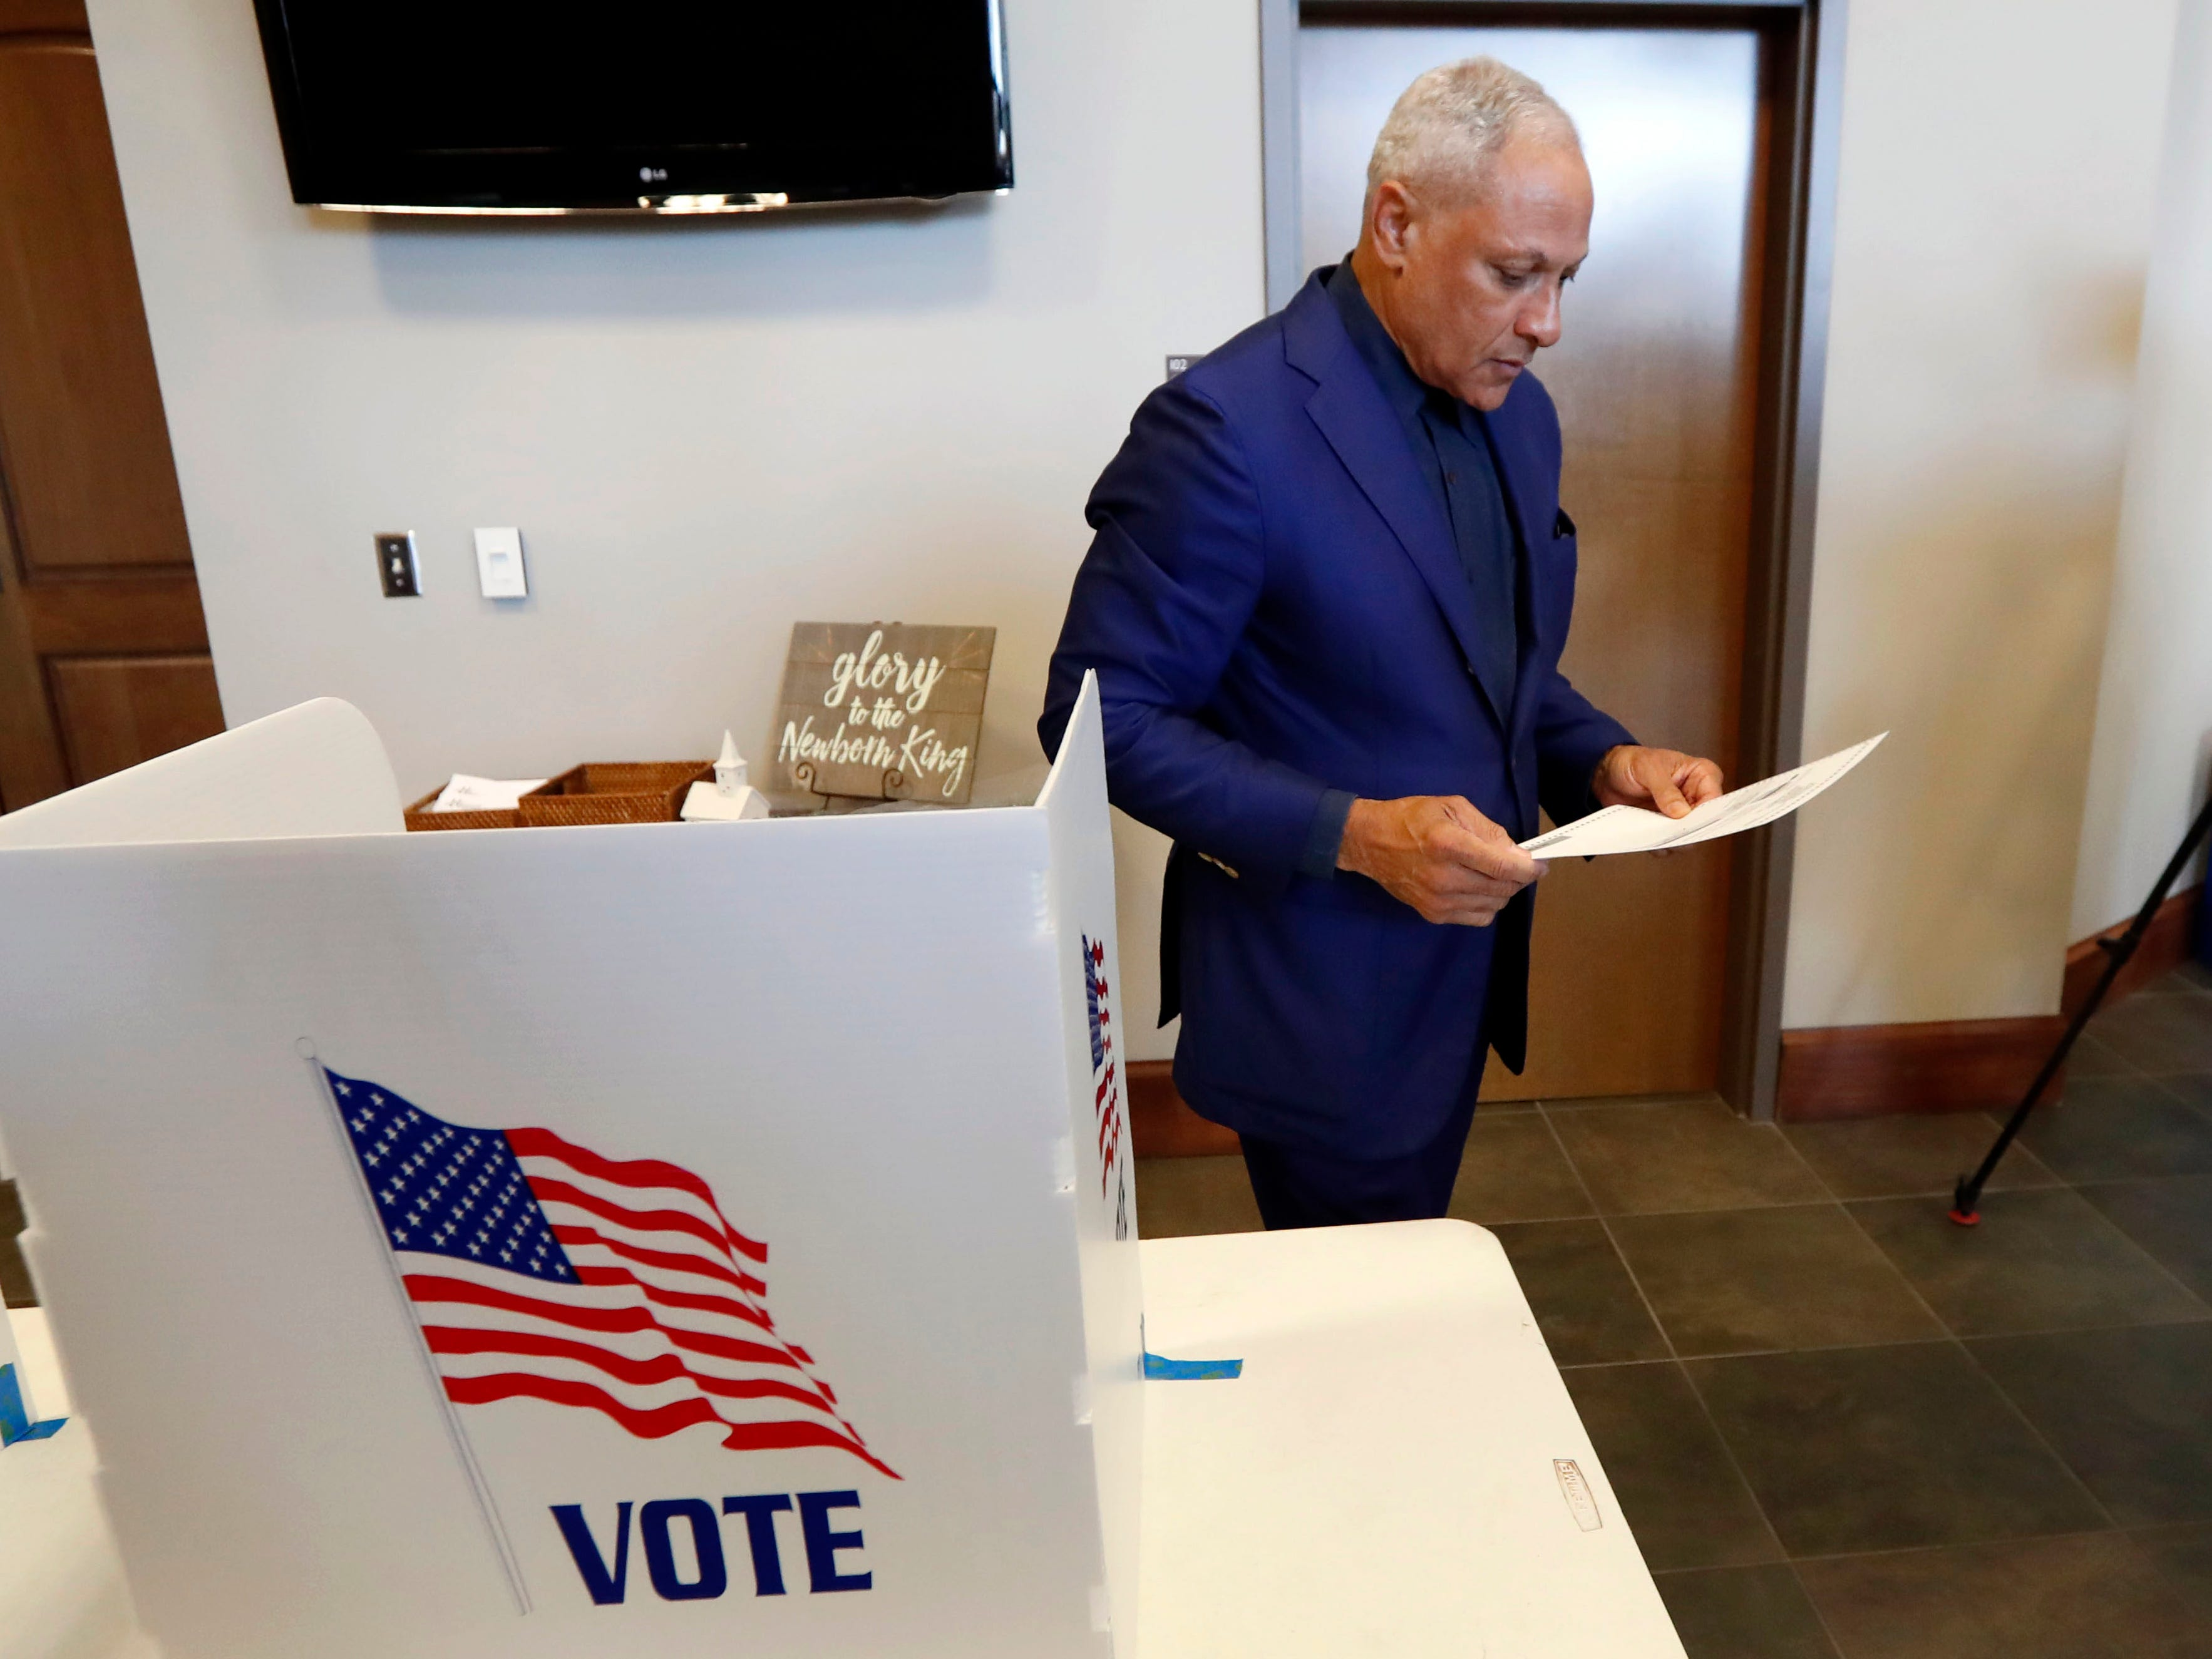 Democrat Mike Espy studies his ballot during a runoff election Tuesday, Nov. 27, 2018 in Ridgeland, Miss.  Mississippi voters are deciding the last U.S. Senate race of the midterms, choosing between Espy and Republican Sen. Cindy Hyde-Smith.